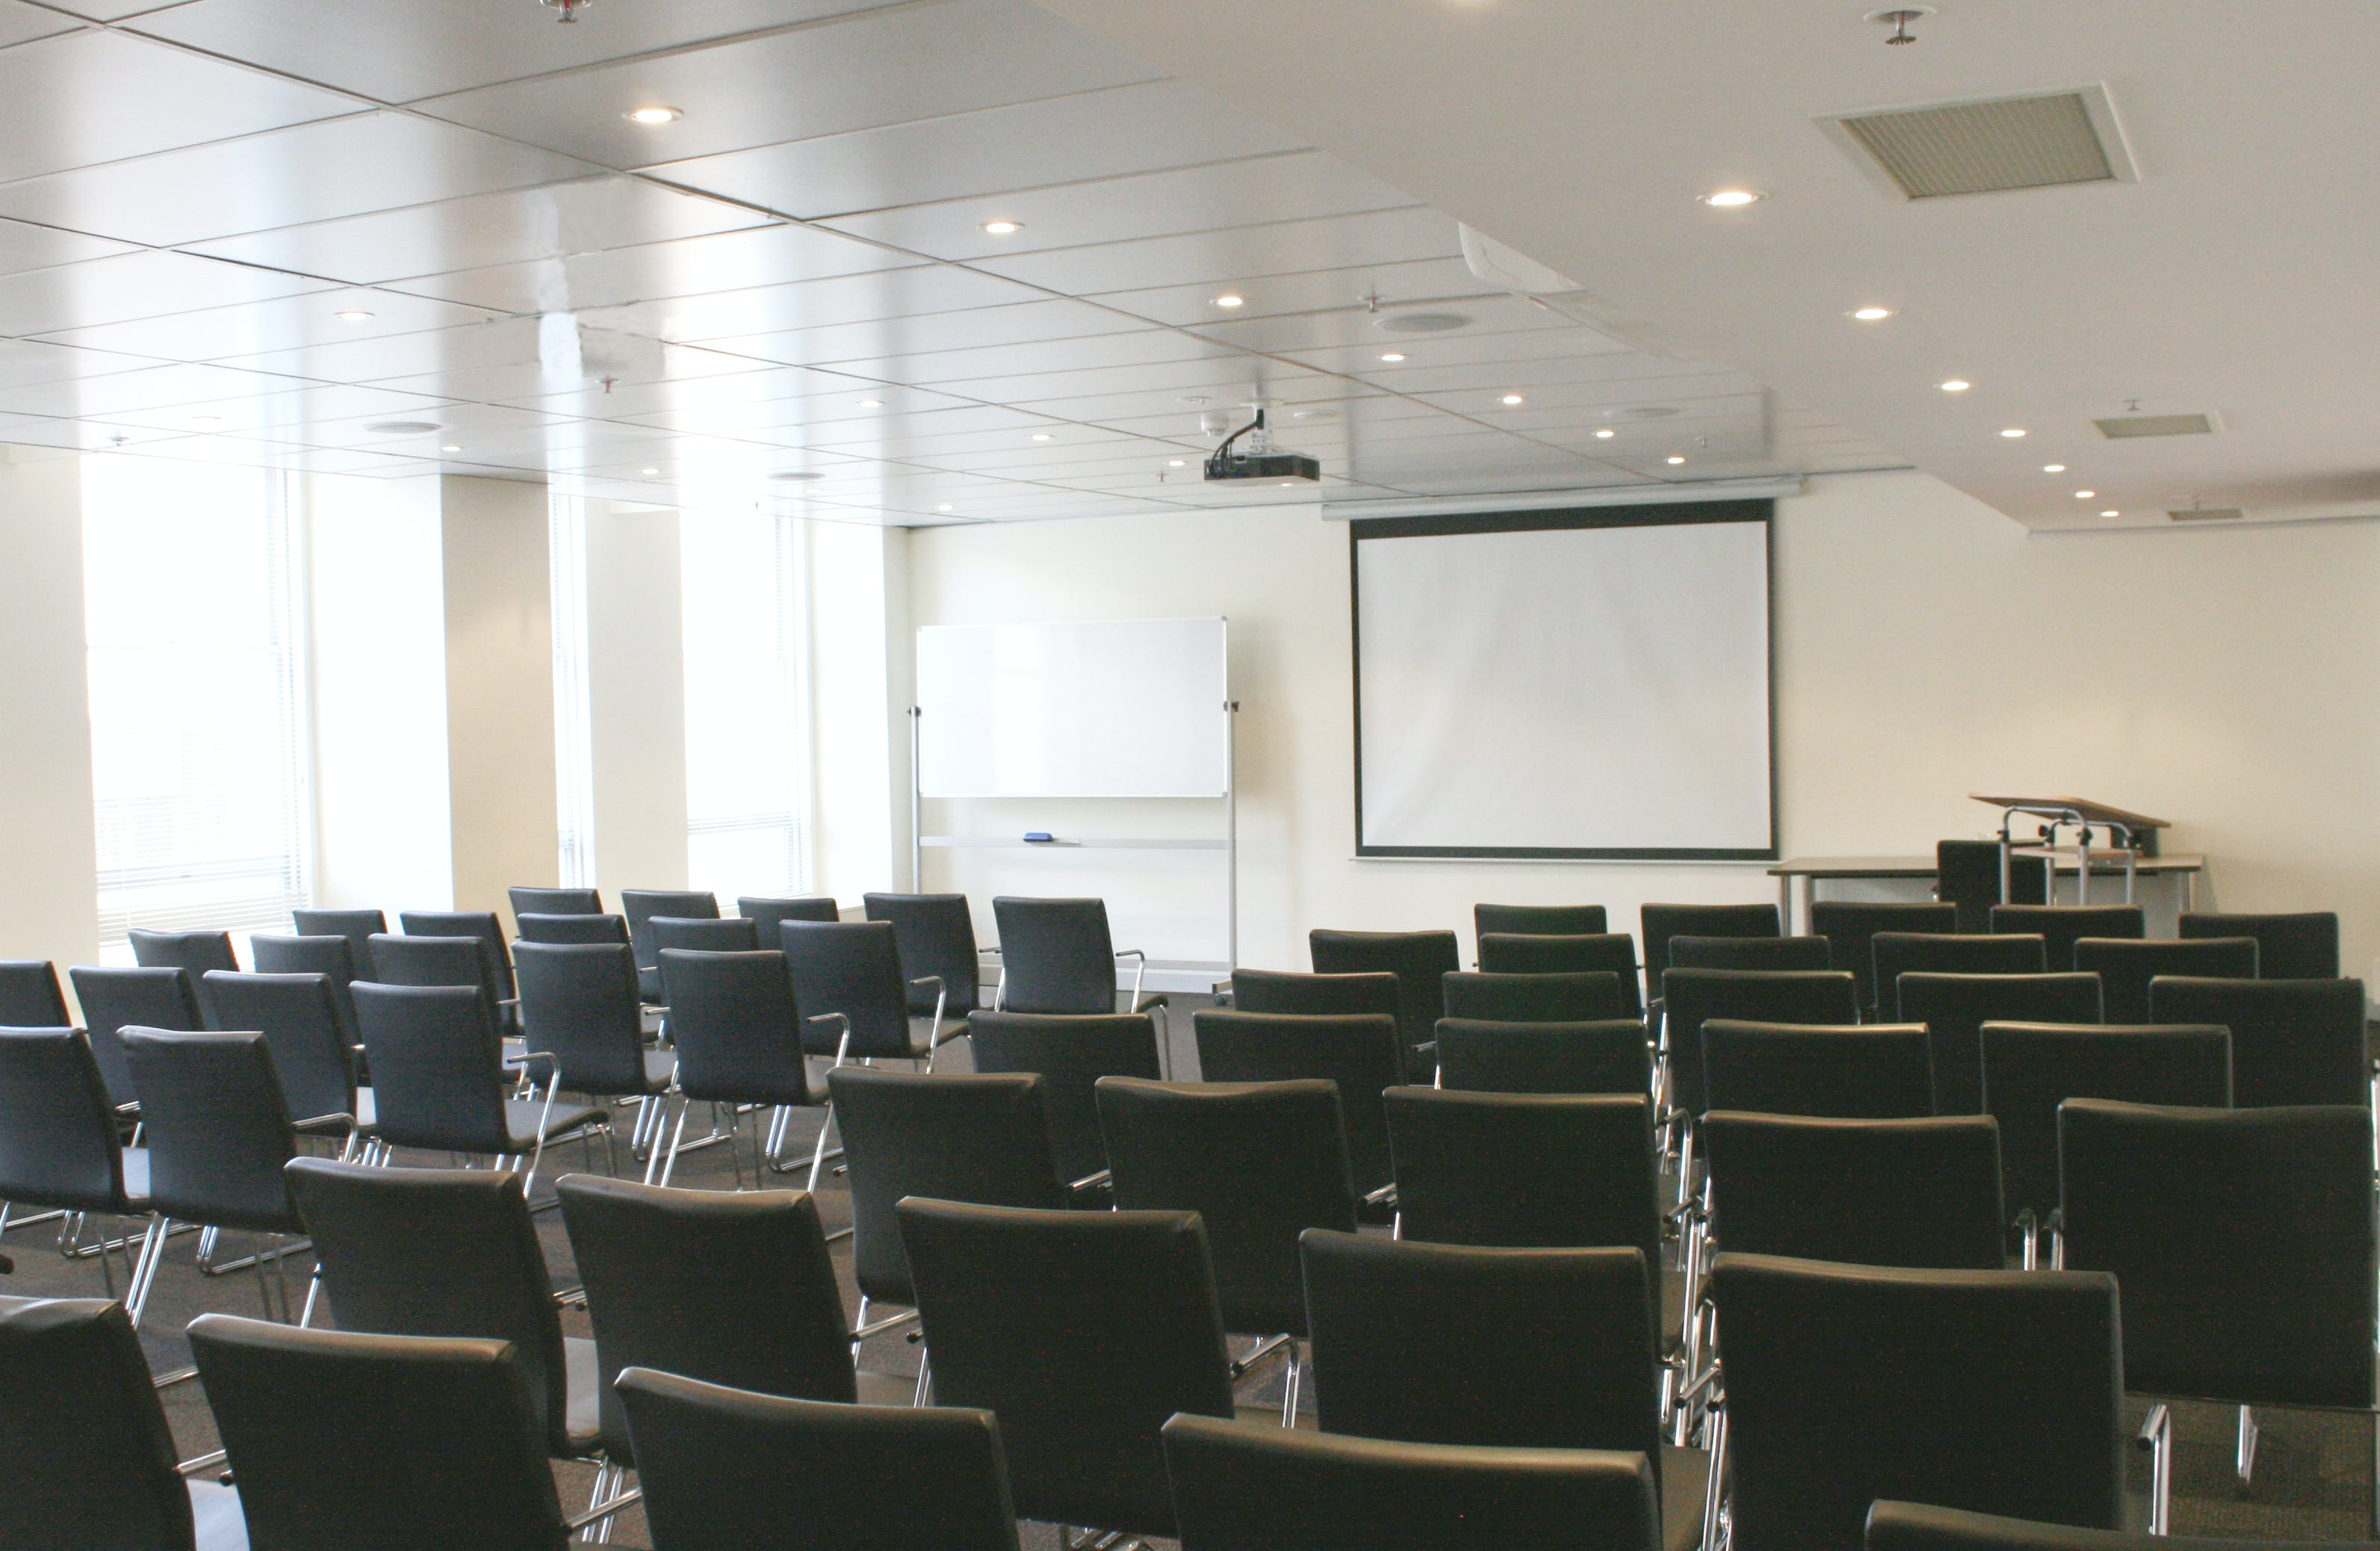 Medium Room, function room at Karstens Melbourne, image 1